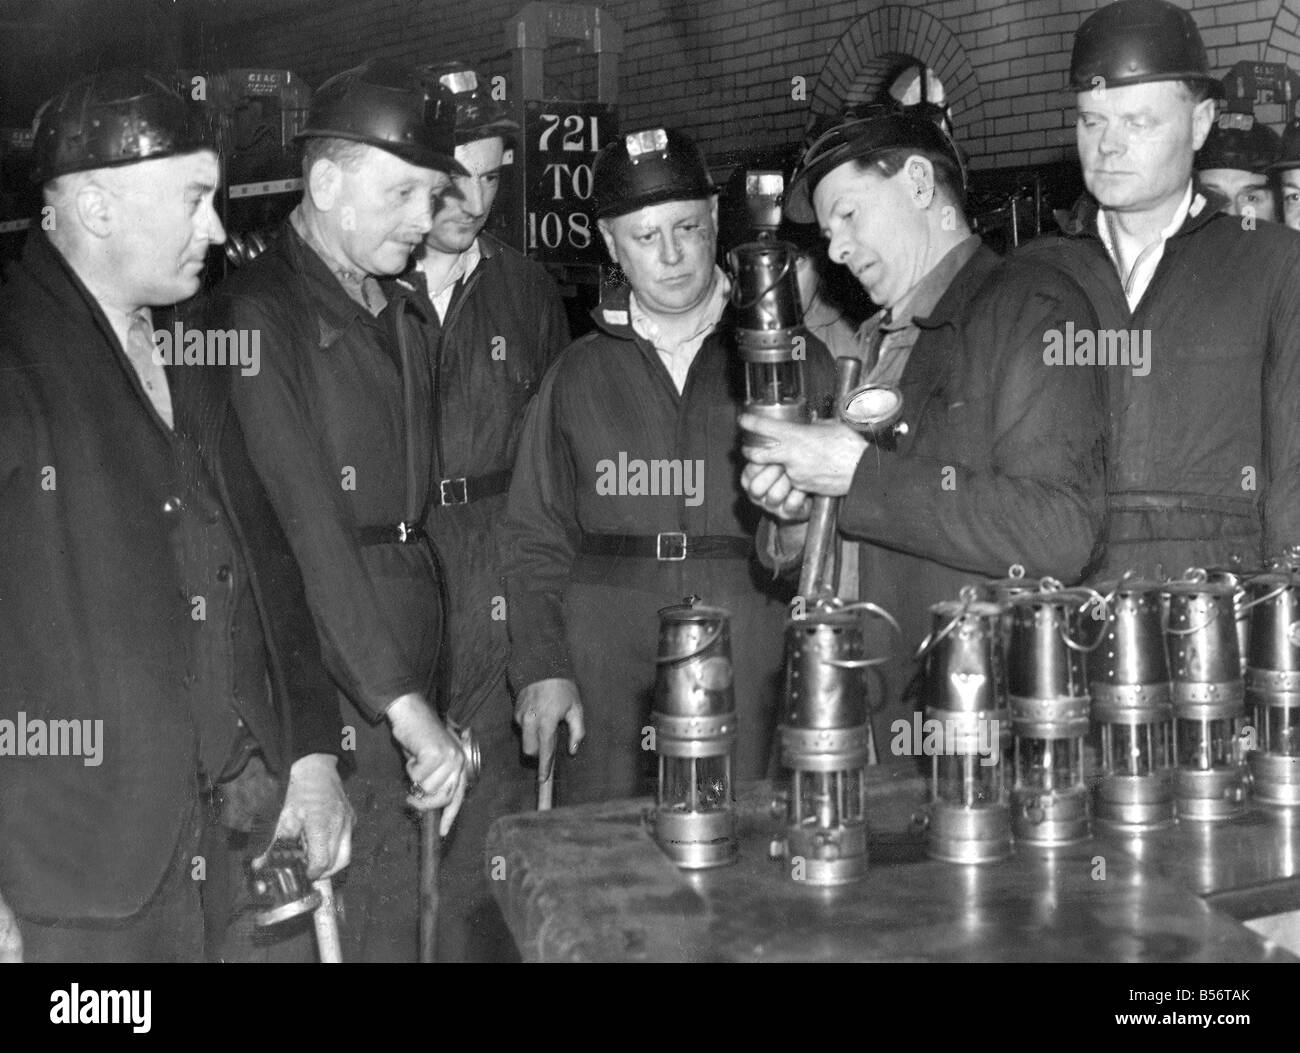 Their lamps are checked by safety man James Harrison then they are frisked for inflammable materials before going - Stock Image